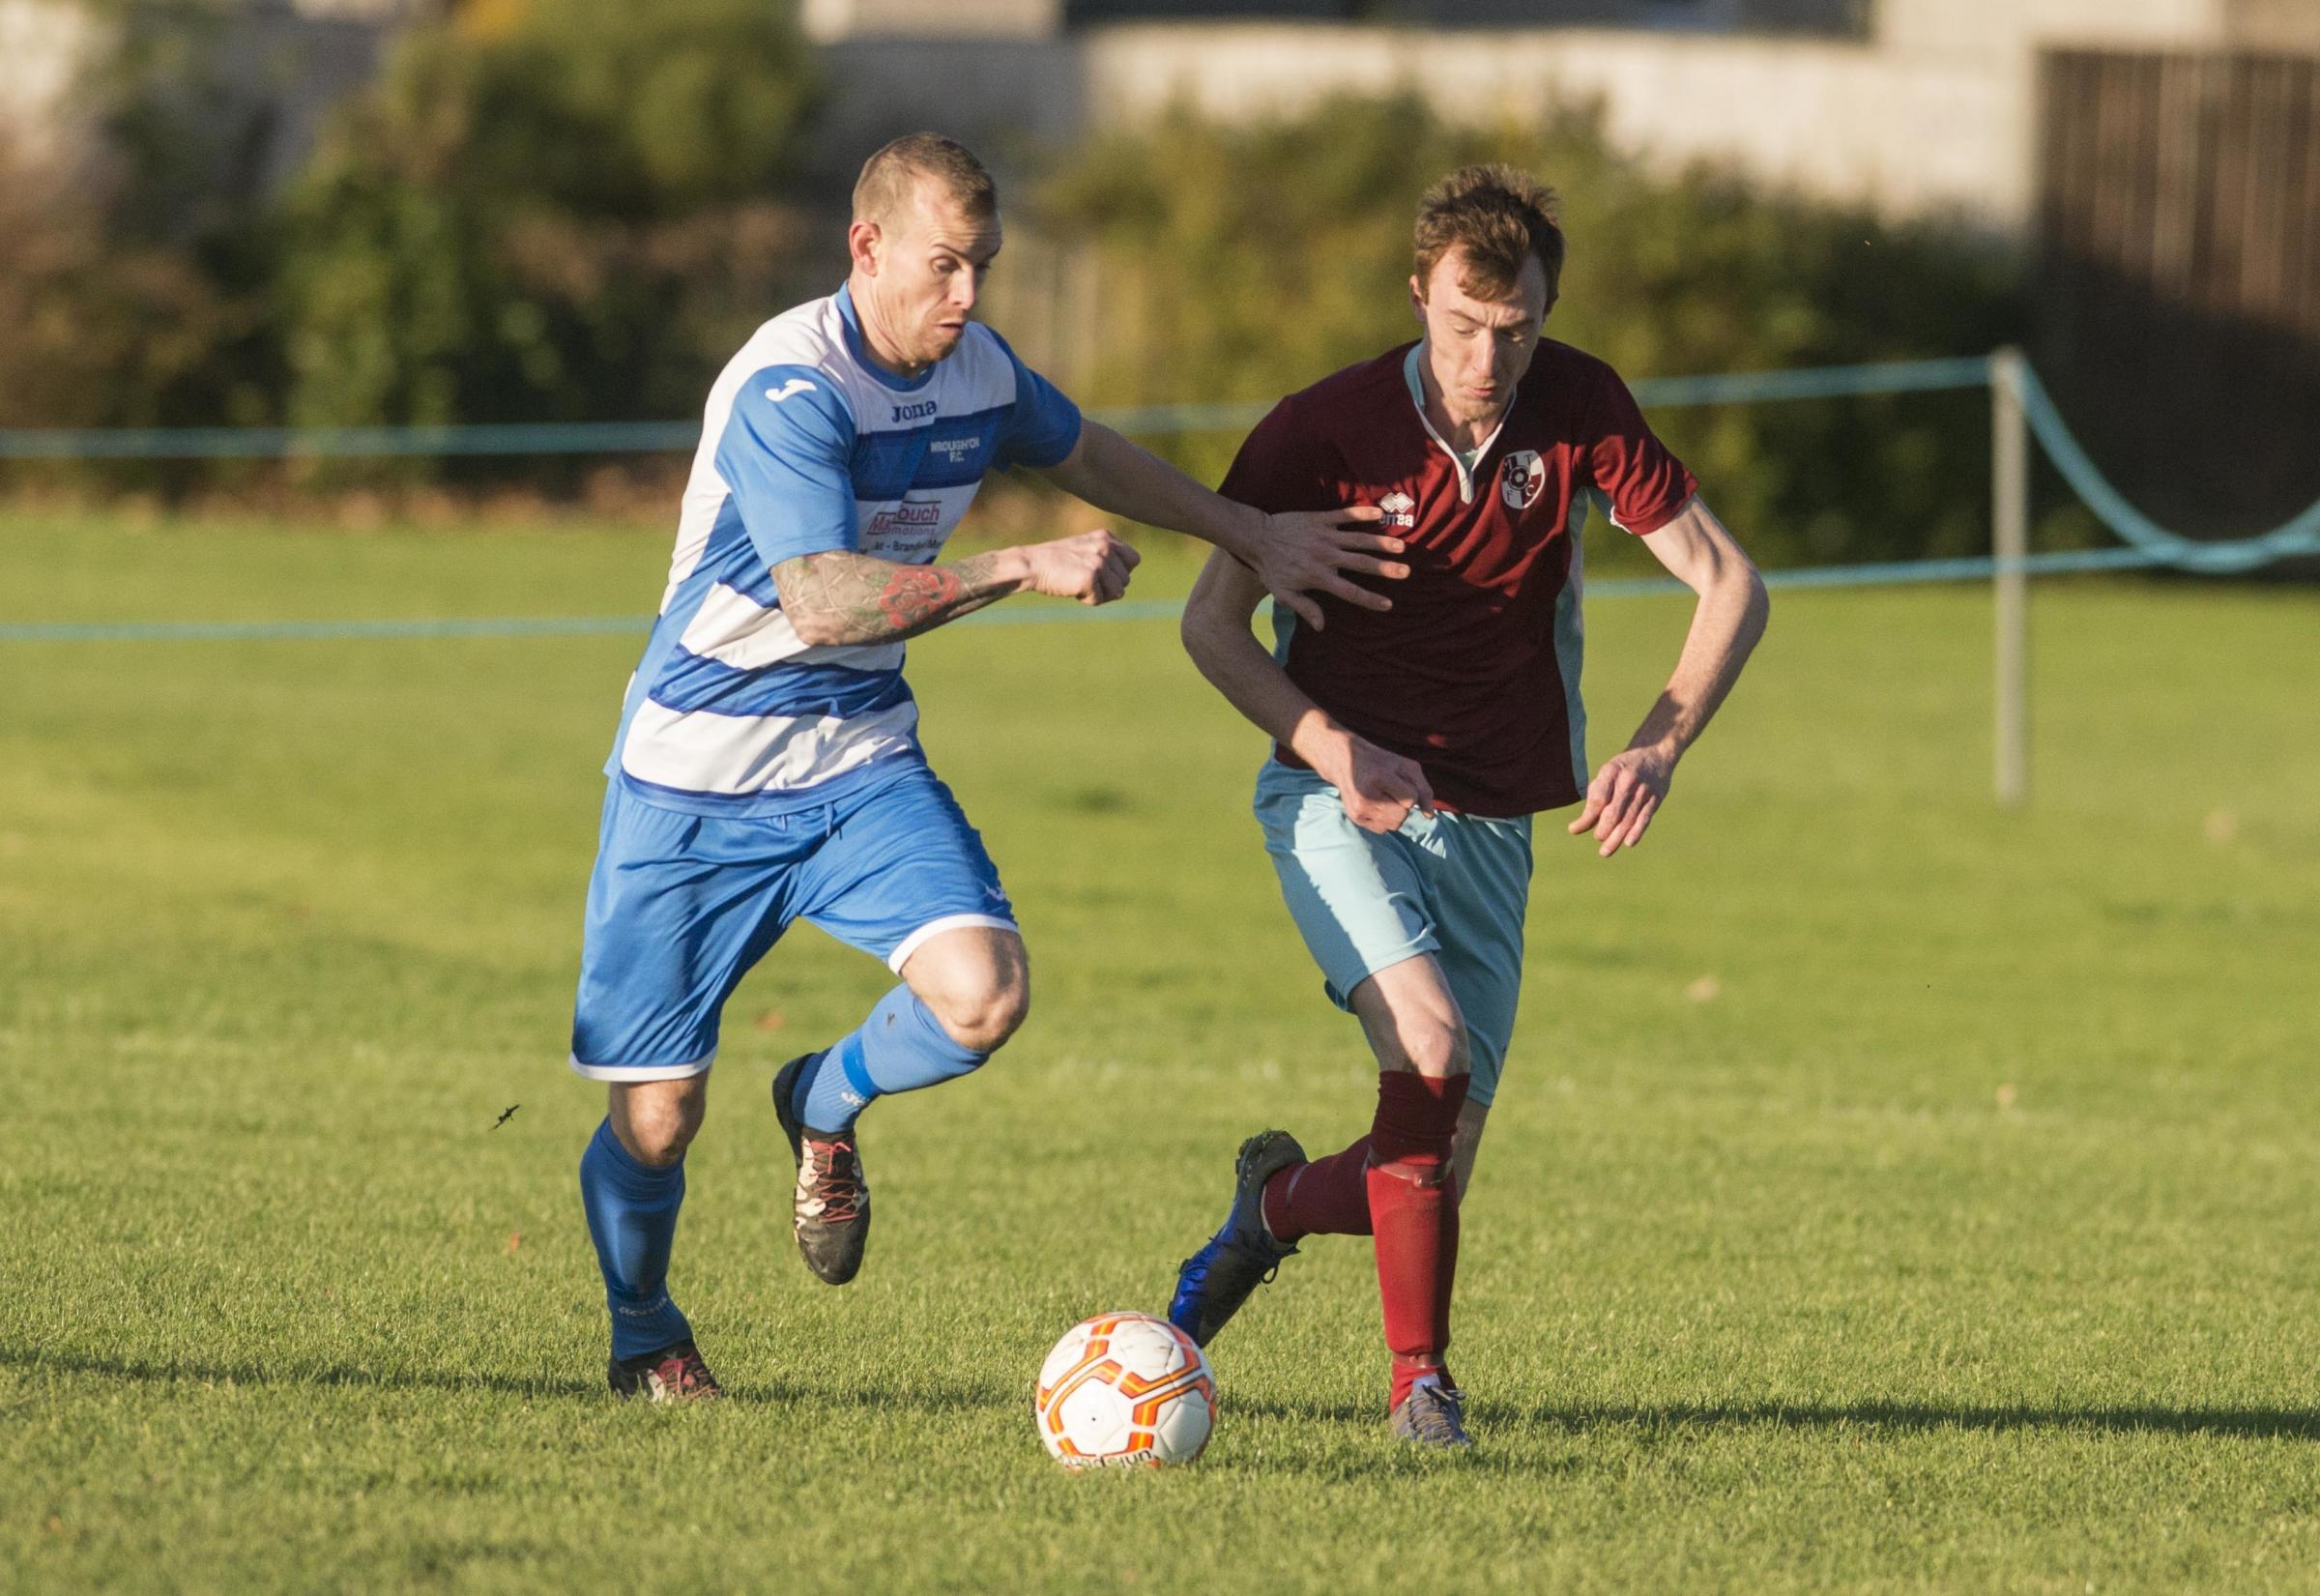 Shane Hibbert scored four times in Wroughton's Knockout Cup win over Purton at the weekend